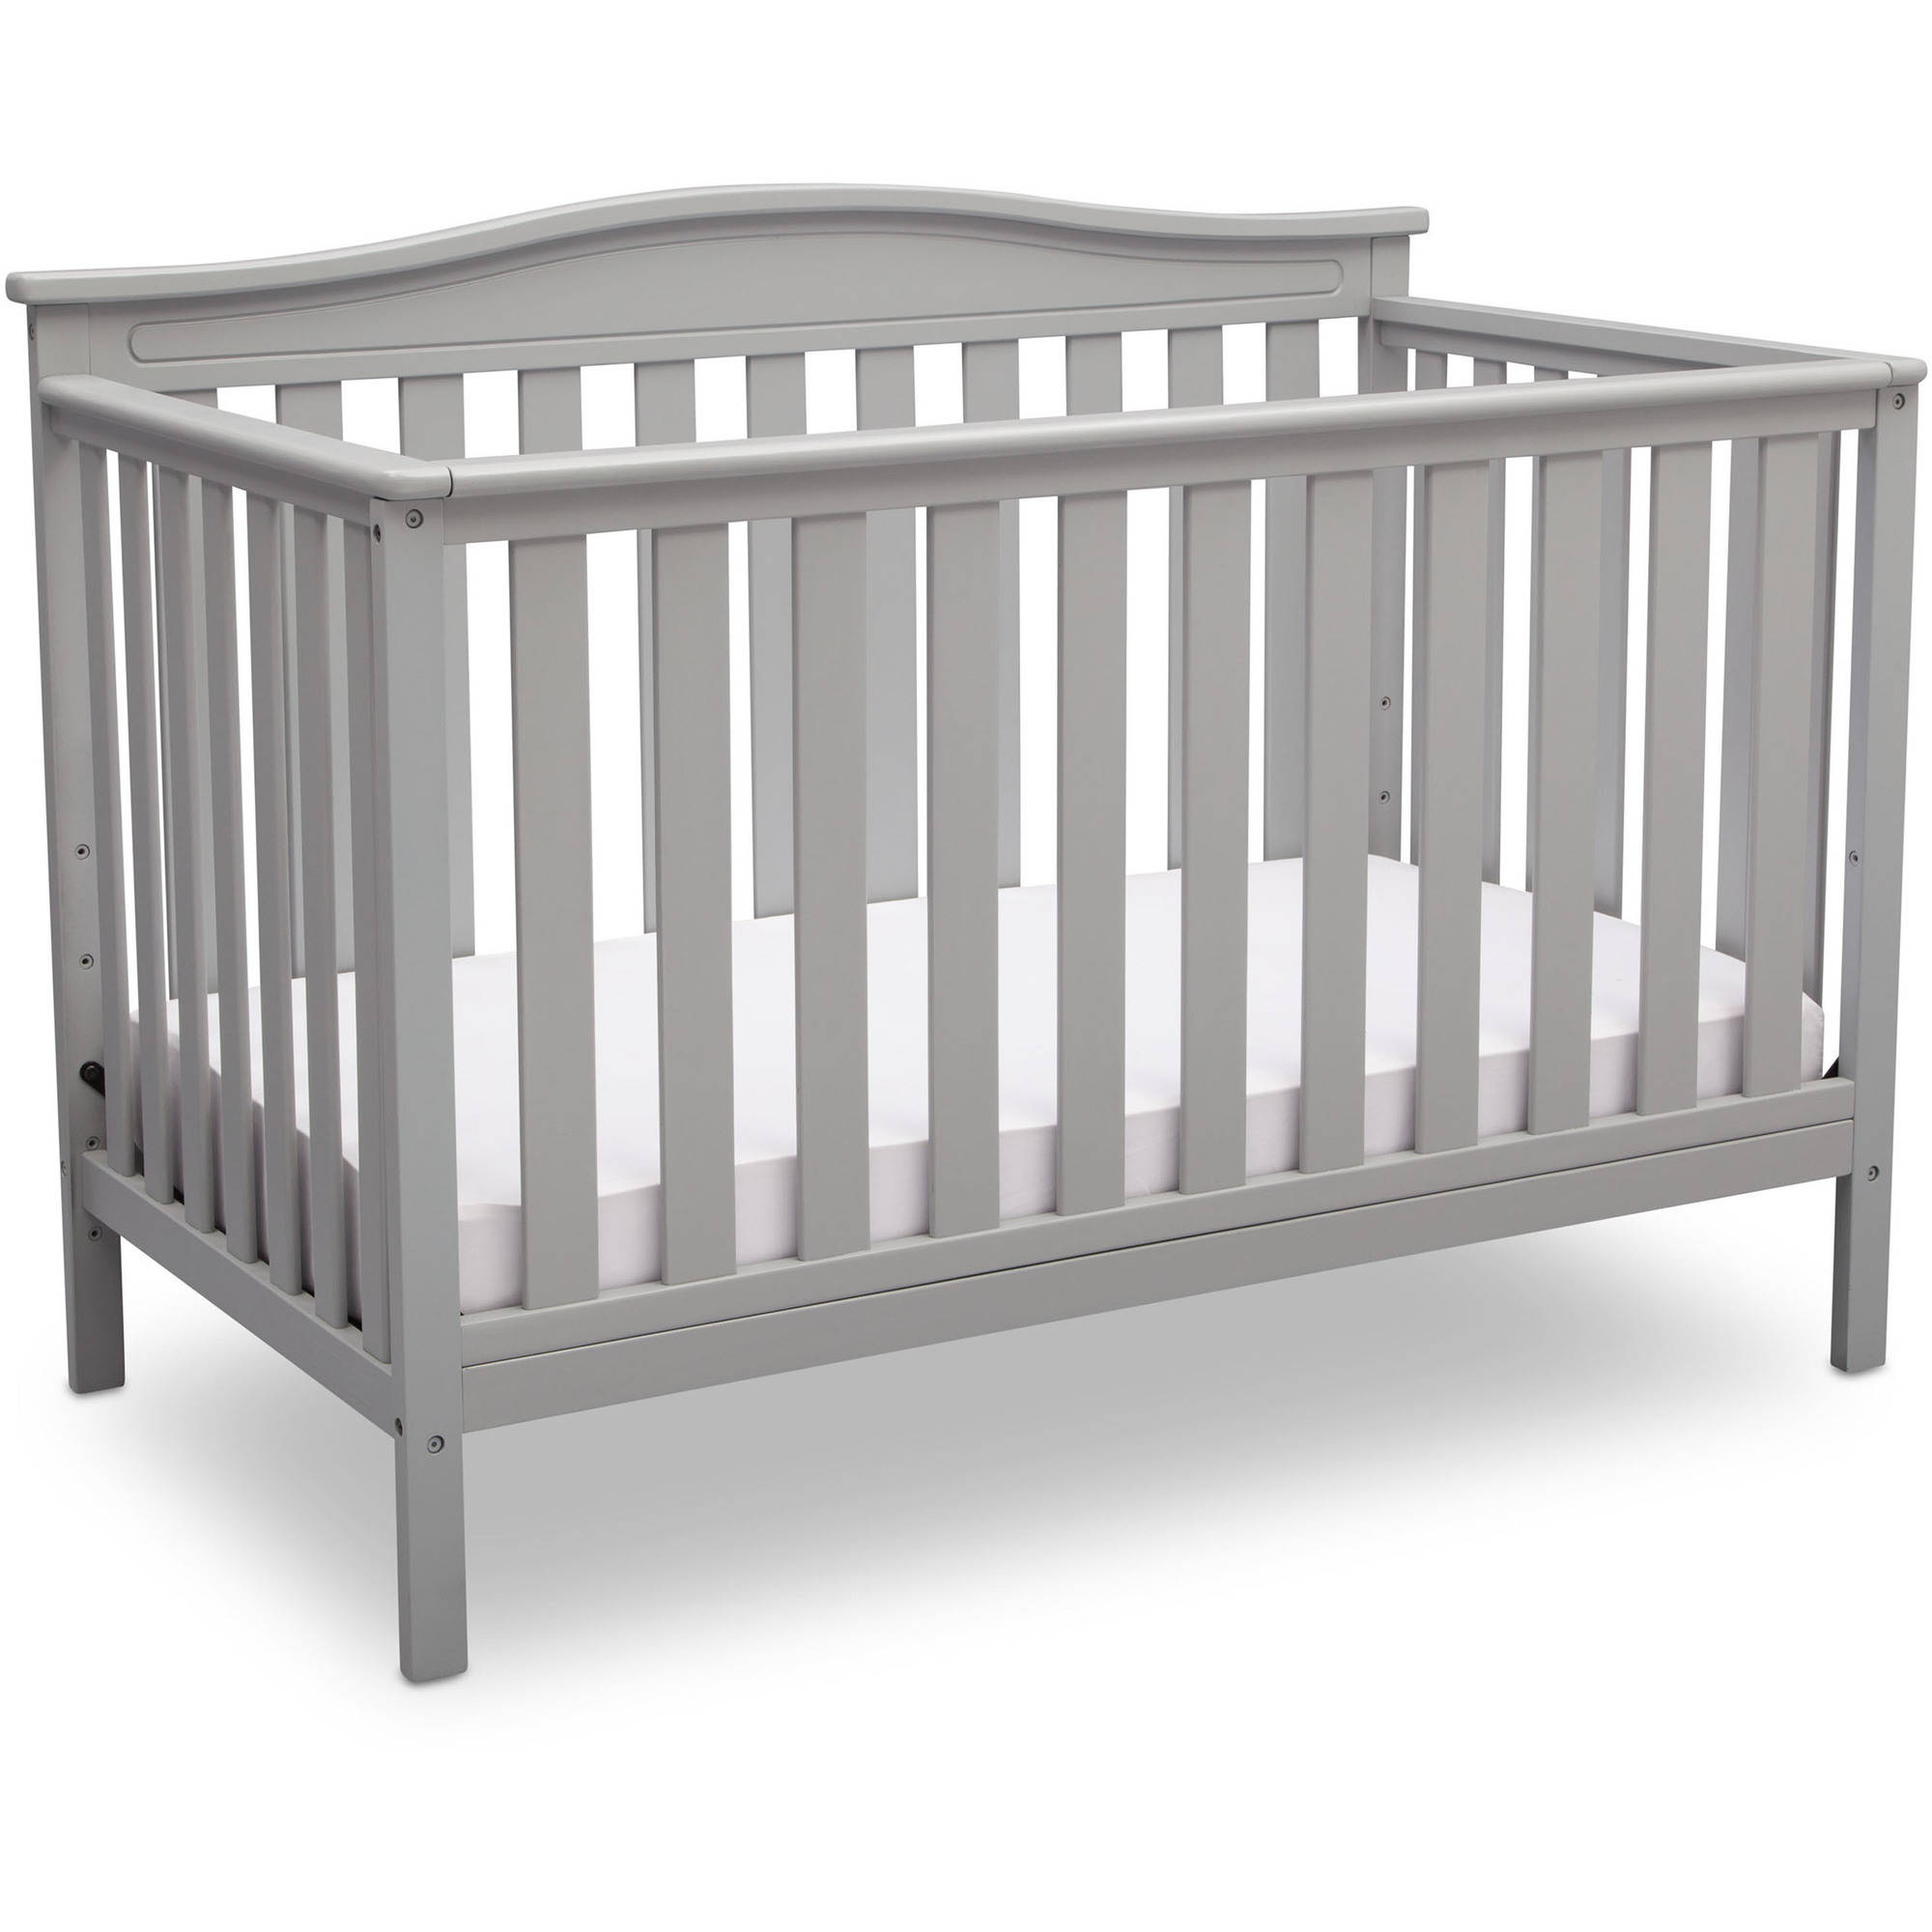 Delta Children Independence 4-in-1 Convertible Crib, Grey